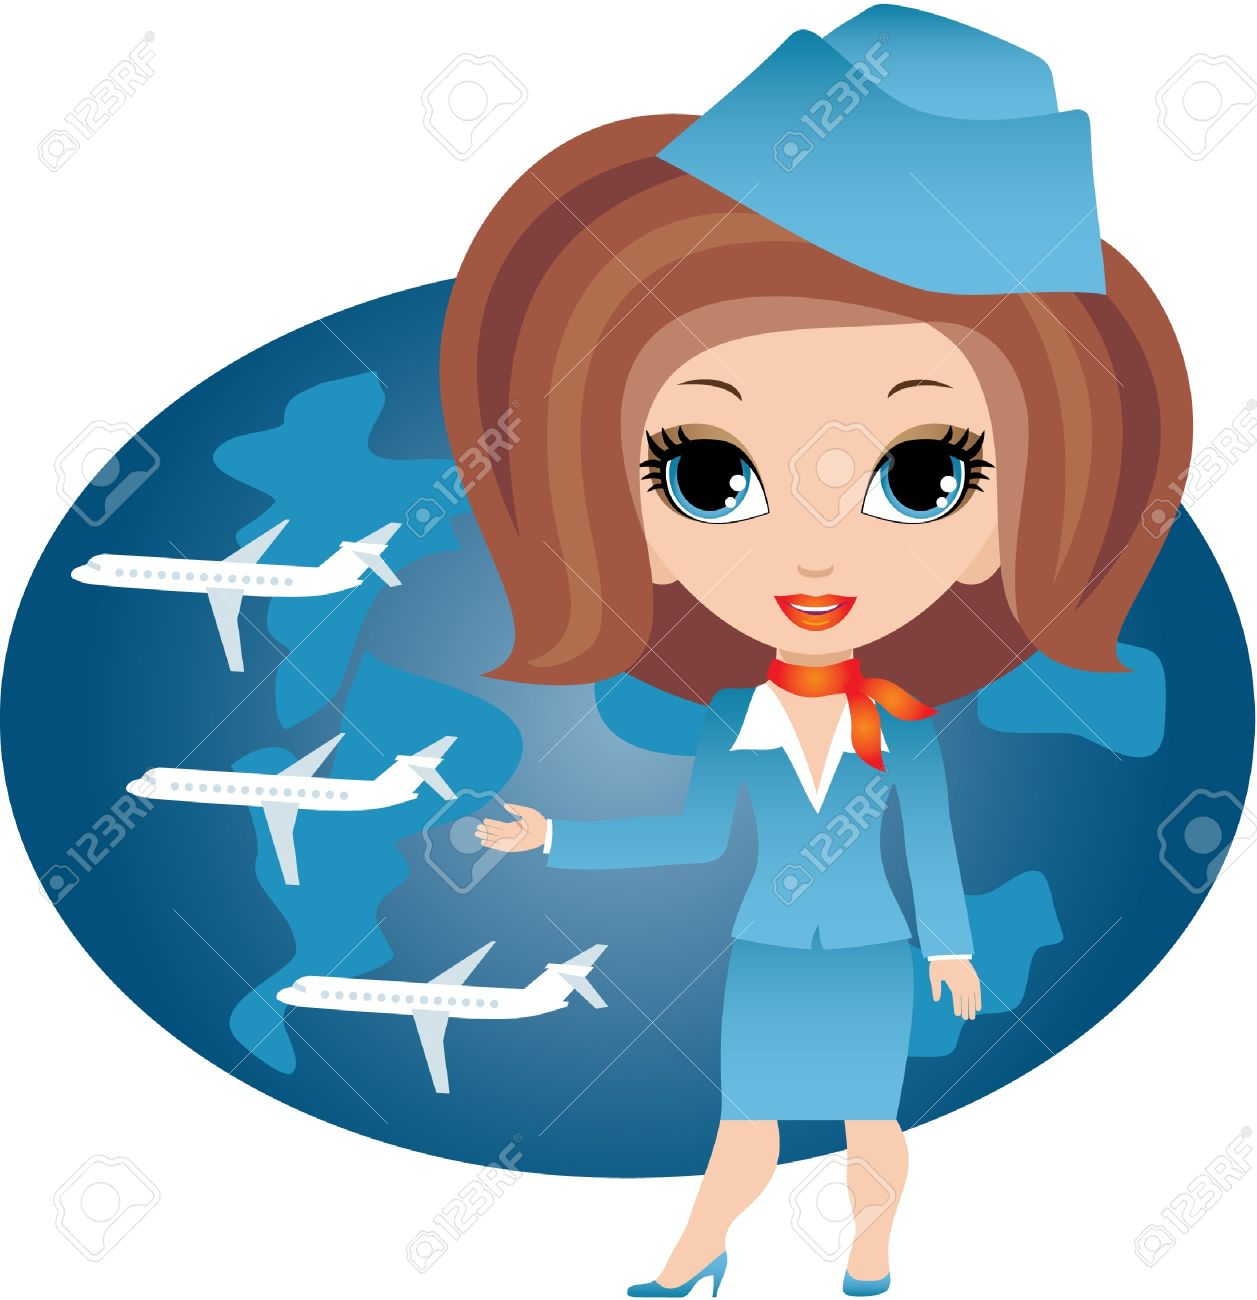 Air hostess clipart 12 » Clipart Station.